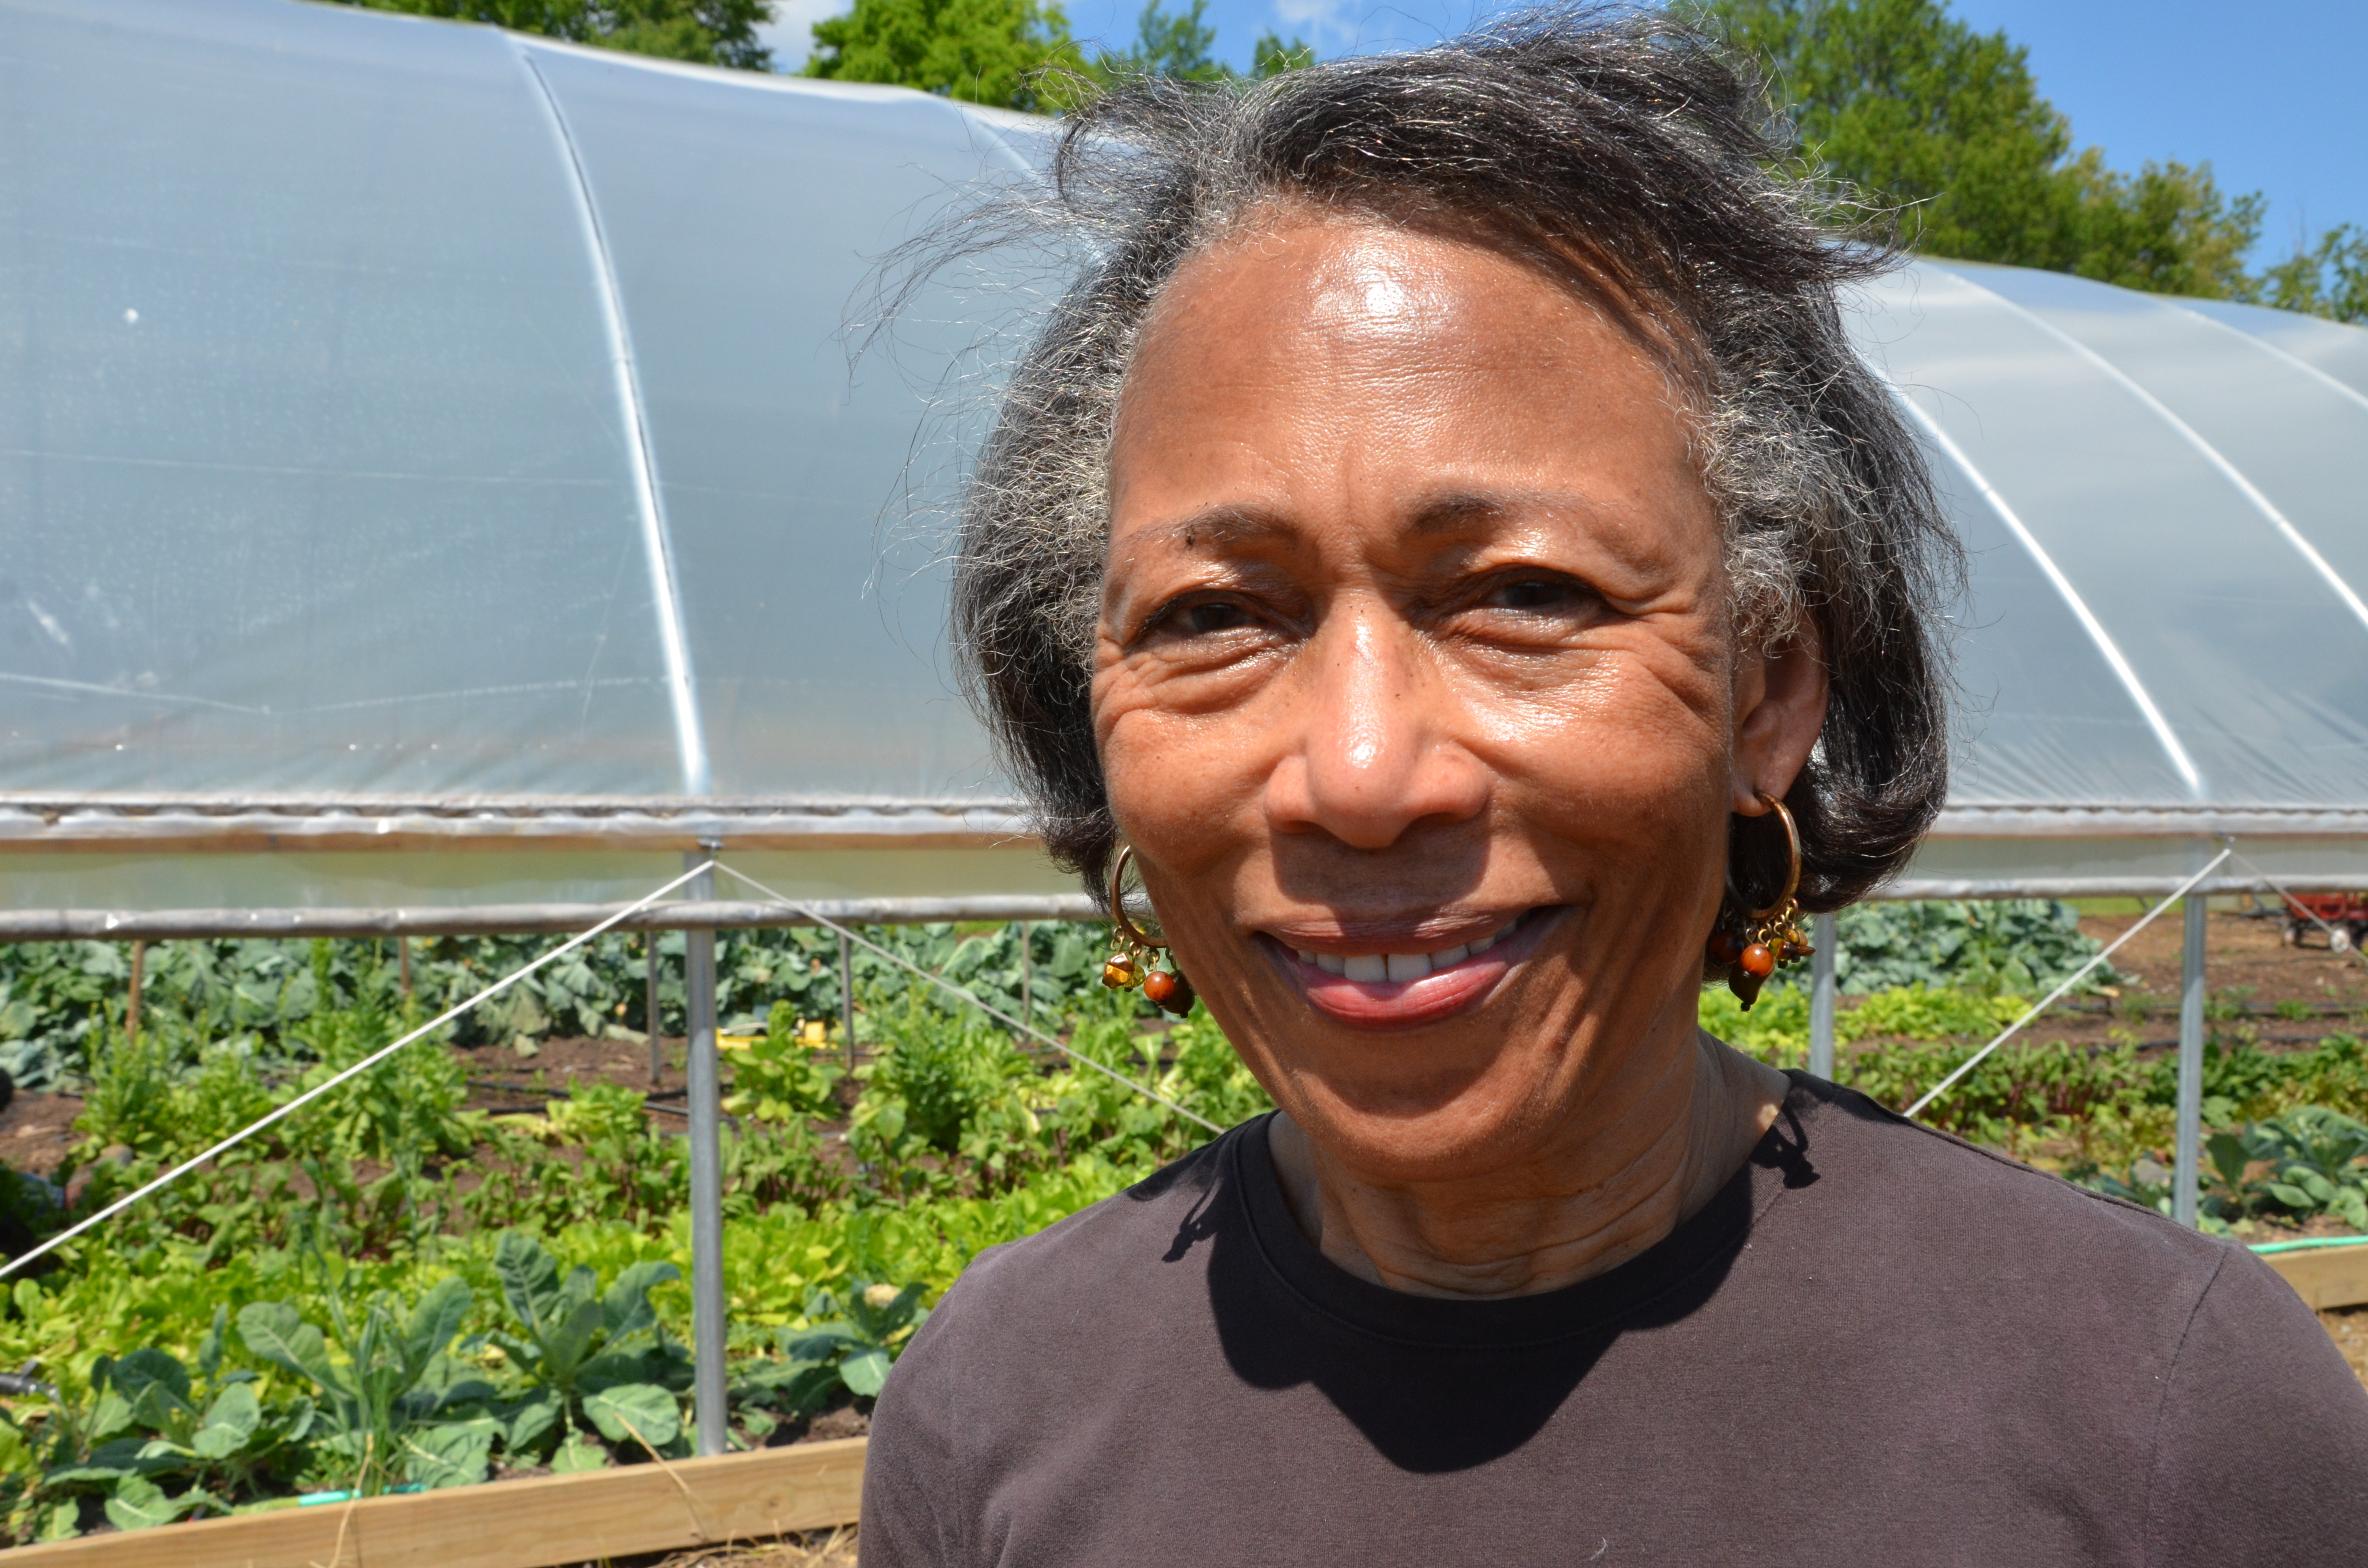 Mildred Griggs of Marianna, Ark., installed a seasonal high tunnel through the USDA StrikeForce Init